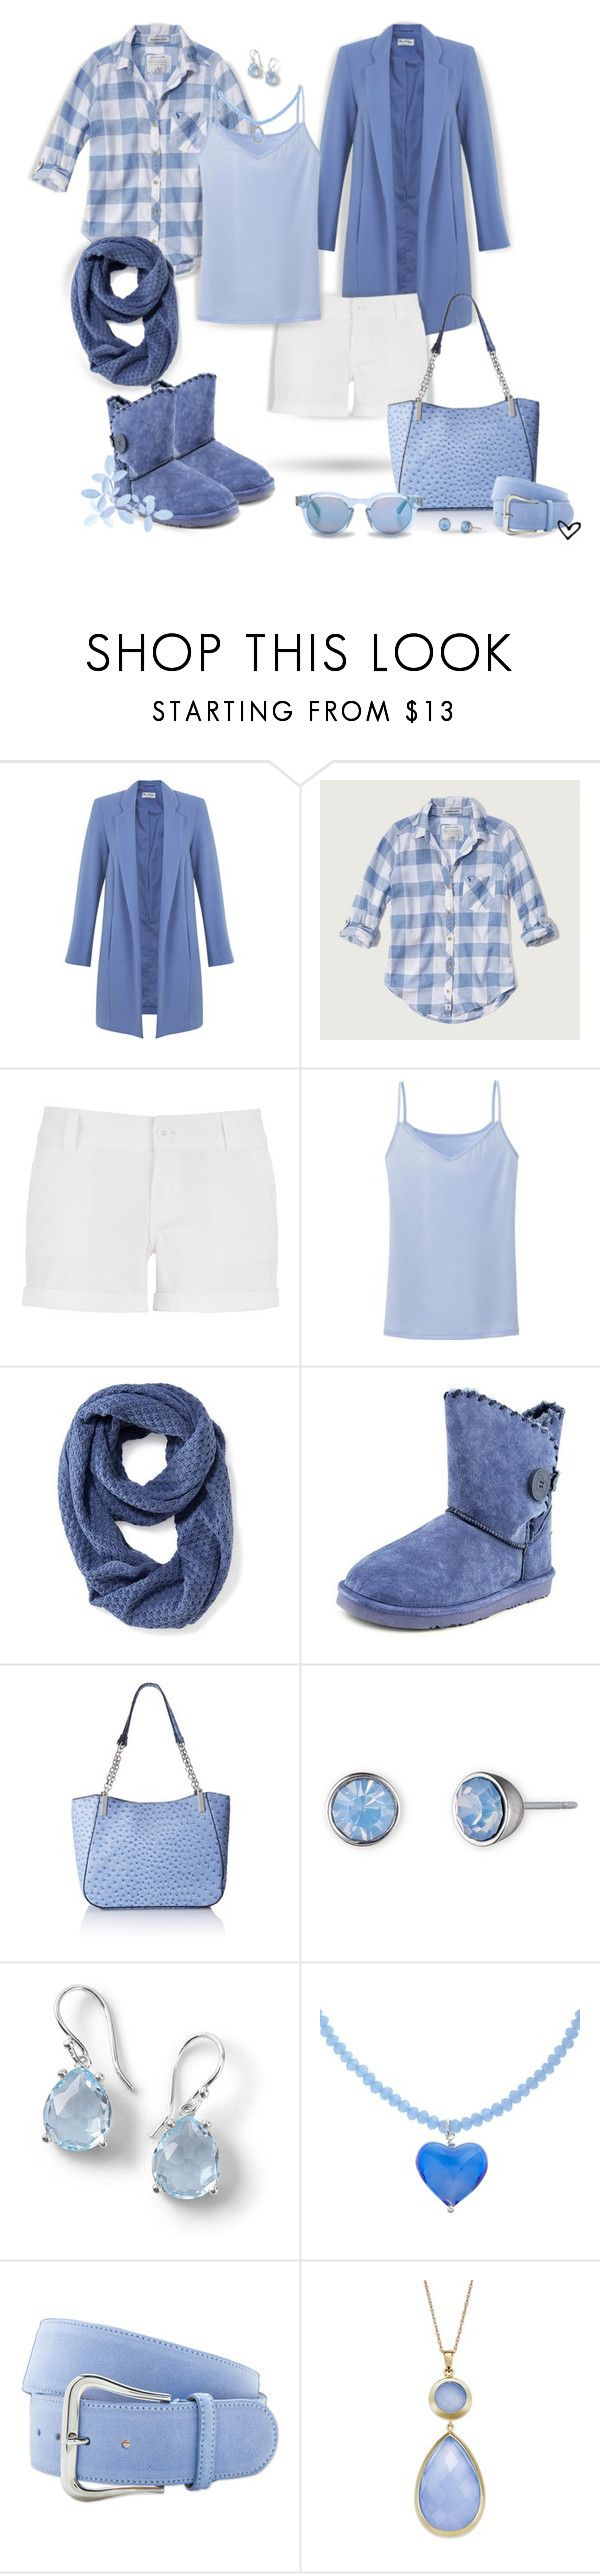 """""""~Periwinkle~ Fall Shorts ~"""" by justwanderingon ❤ liked on Polyvore featuring Miss Selfridge, Abercrombie & Fitch, maurices, Uniqlo, Old Navy, Lamo, Emilie M., Lonna & Lilly, Ippolita and Martick"""